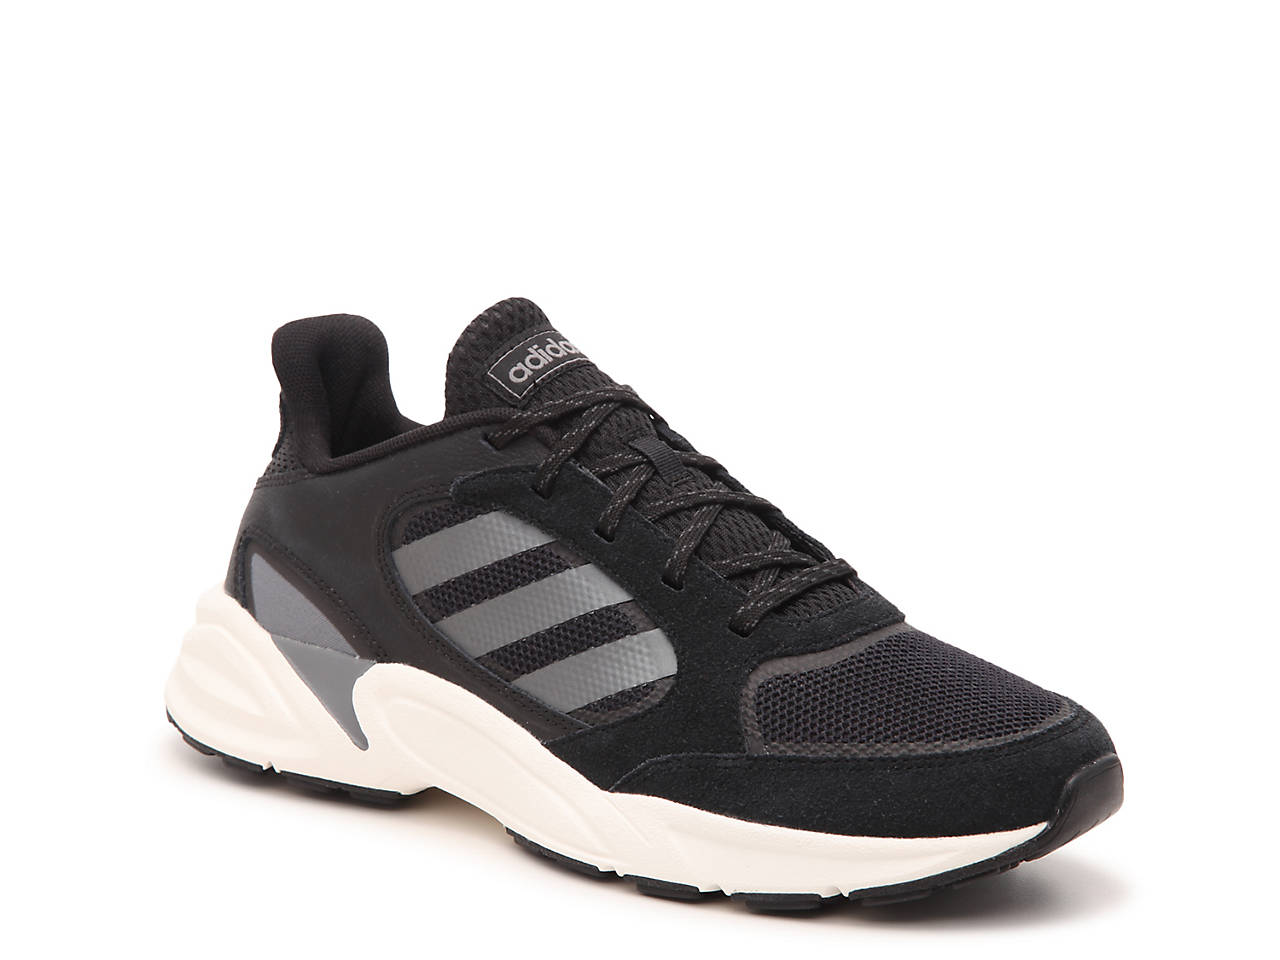 adidas 90s valasion women's running shoes